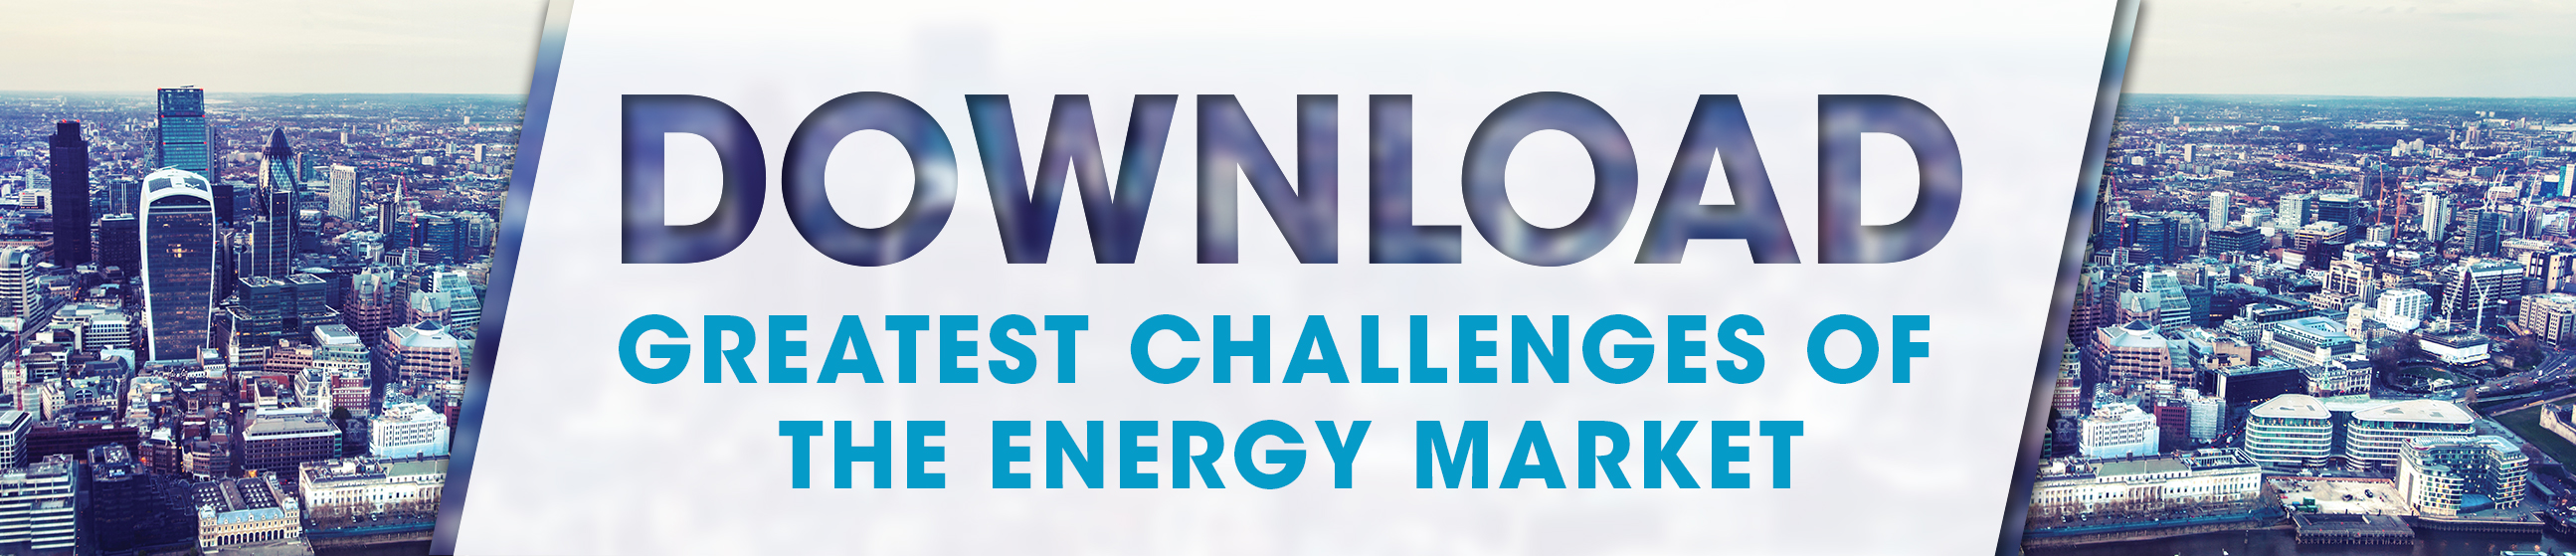 Greatest-Challneges-Energy-Market